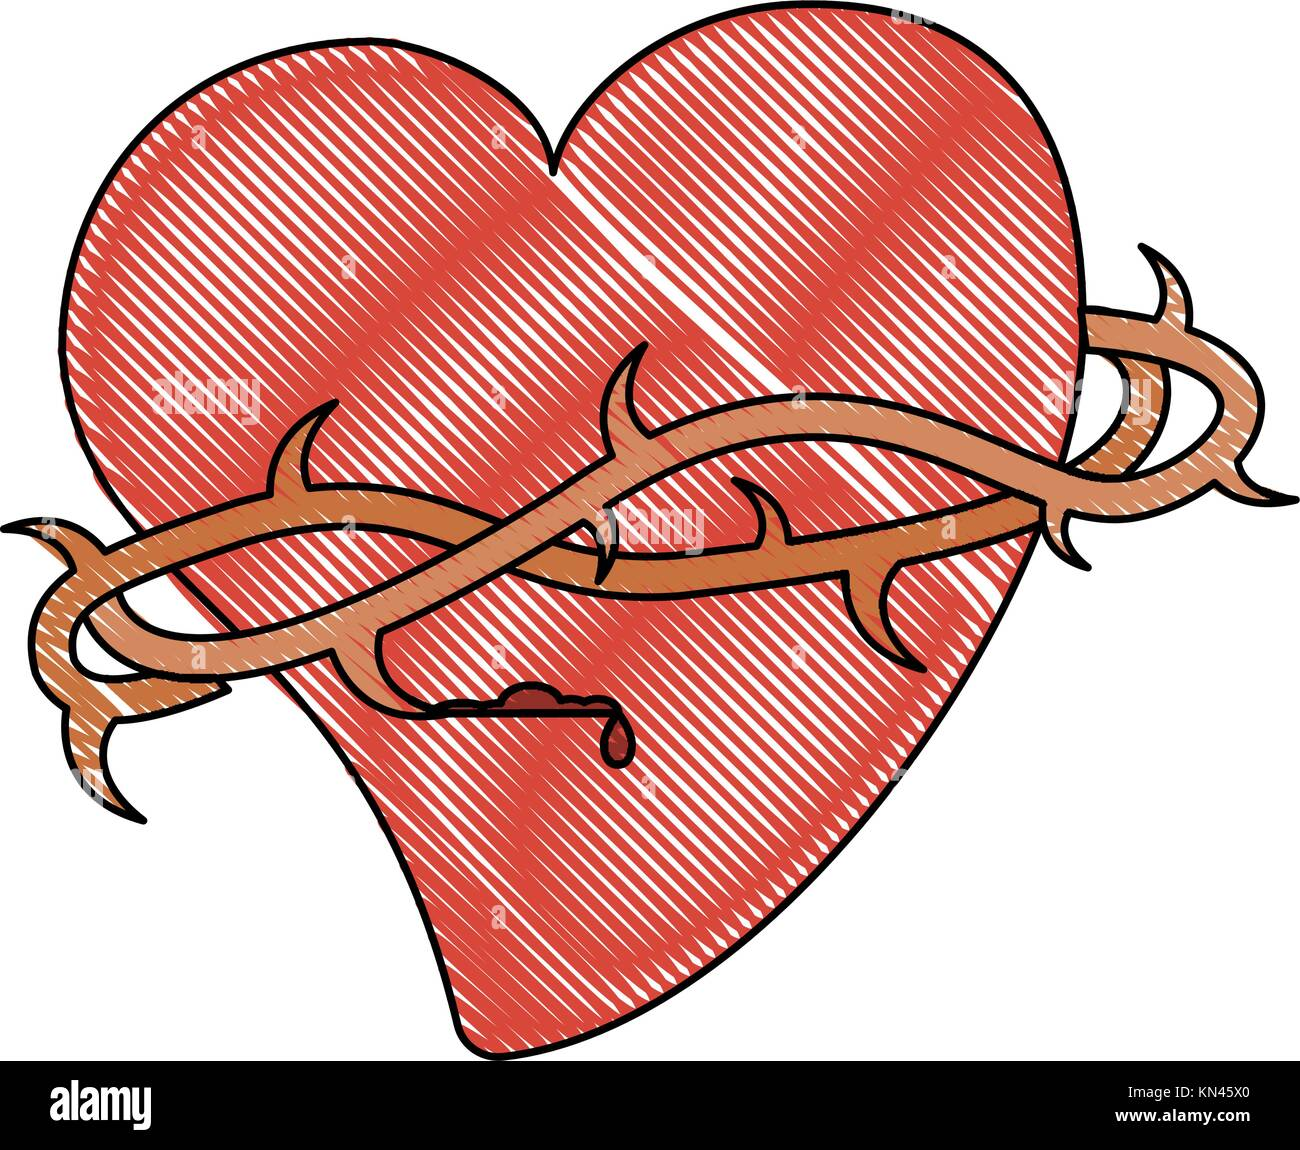 Sacred Heart Fire Stock Photos & Sacred Heart Fire Stock Images - Alamy